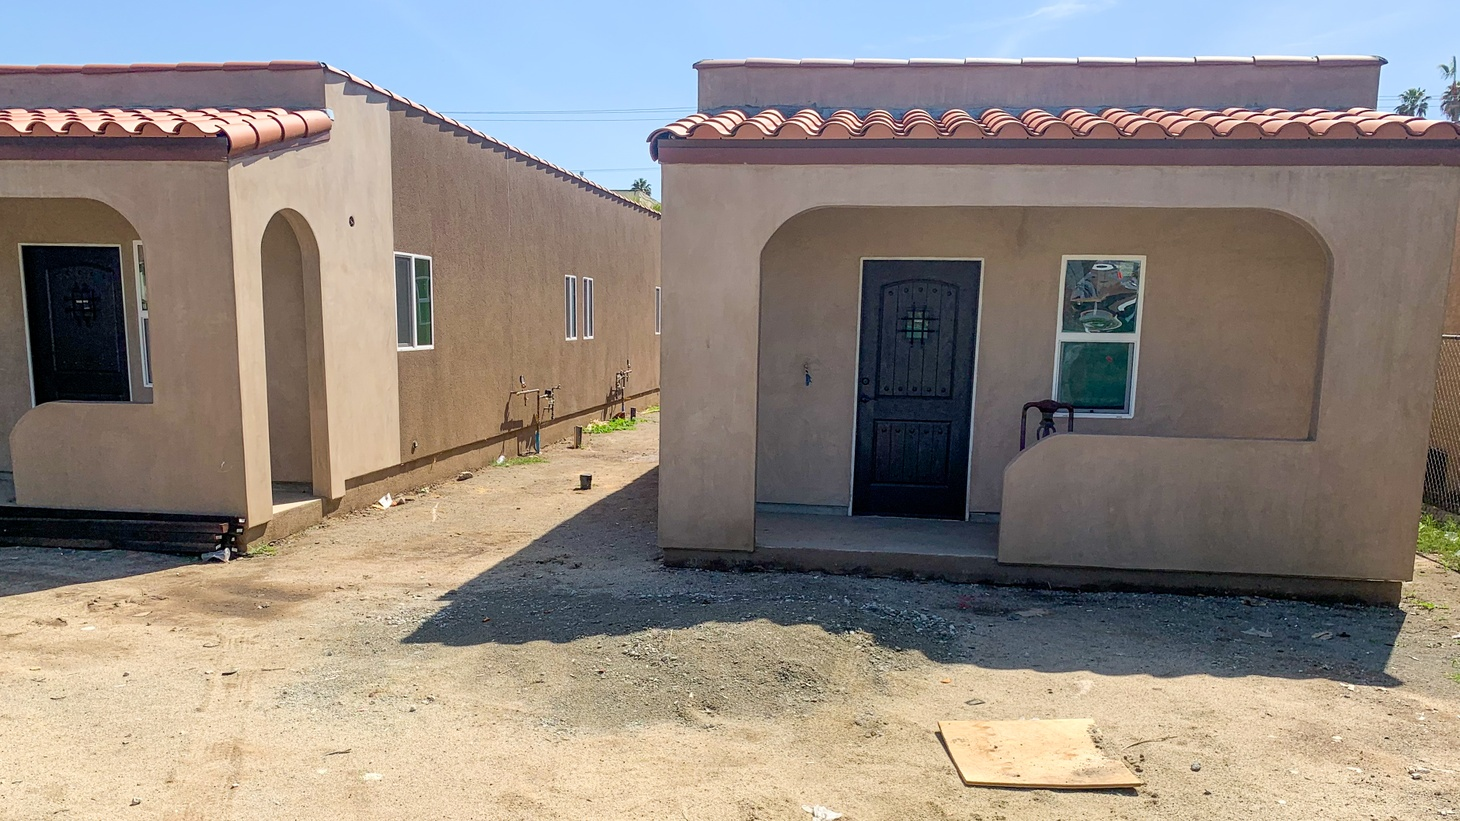 This eight-unit bungalow court project in the Vermont Knolls neighborhood, when it's finished in May, will house formerly homeless tenants. At about $225,000 per unit, its budget is roughly half of what a typical affordable housing development costs.